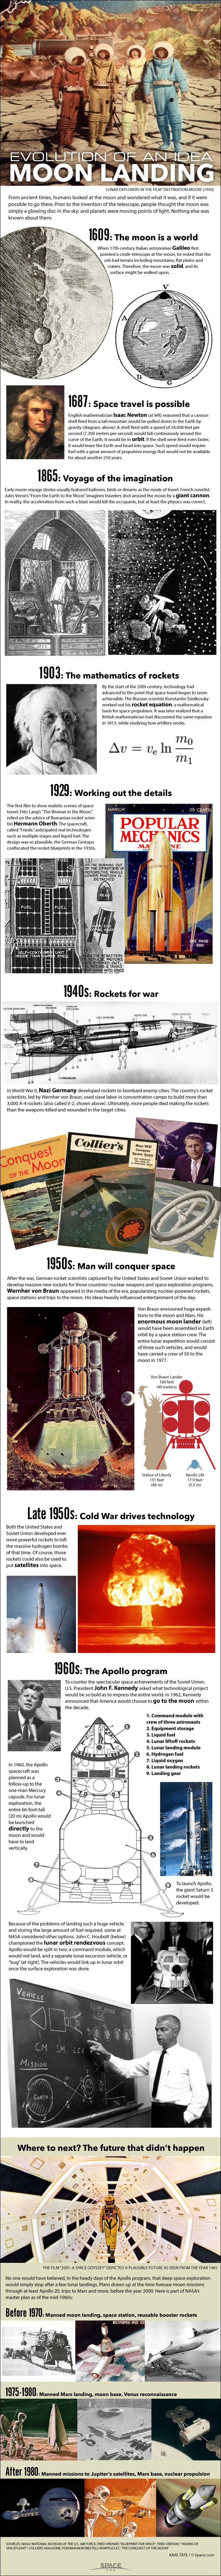 For centuries before Apollo 11 landed on the moon, the idea of going there stirred people's imaginations. See the 350-year history of moon exploration in this Space.com infographic.